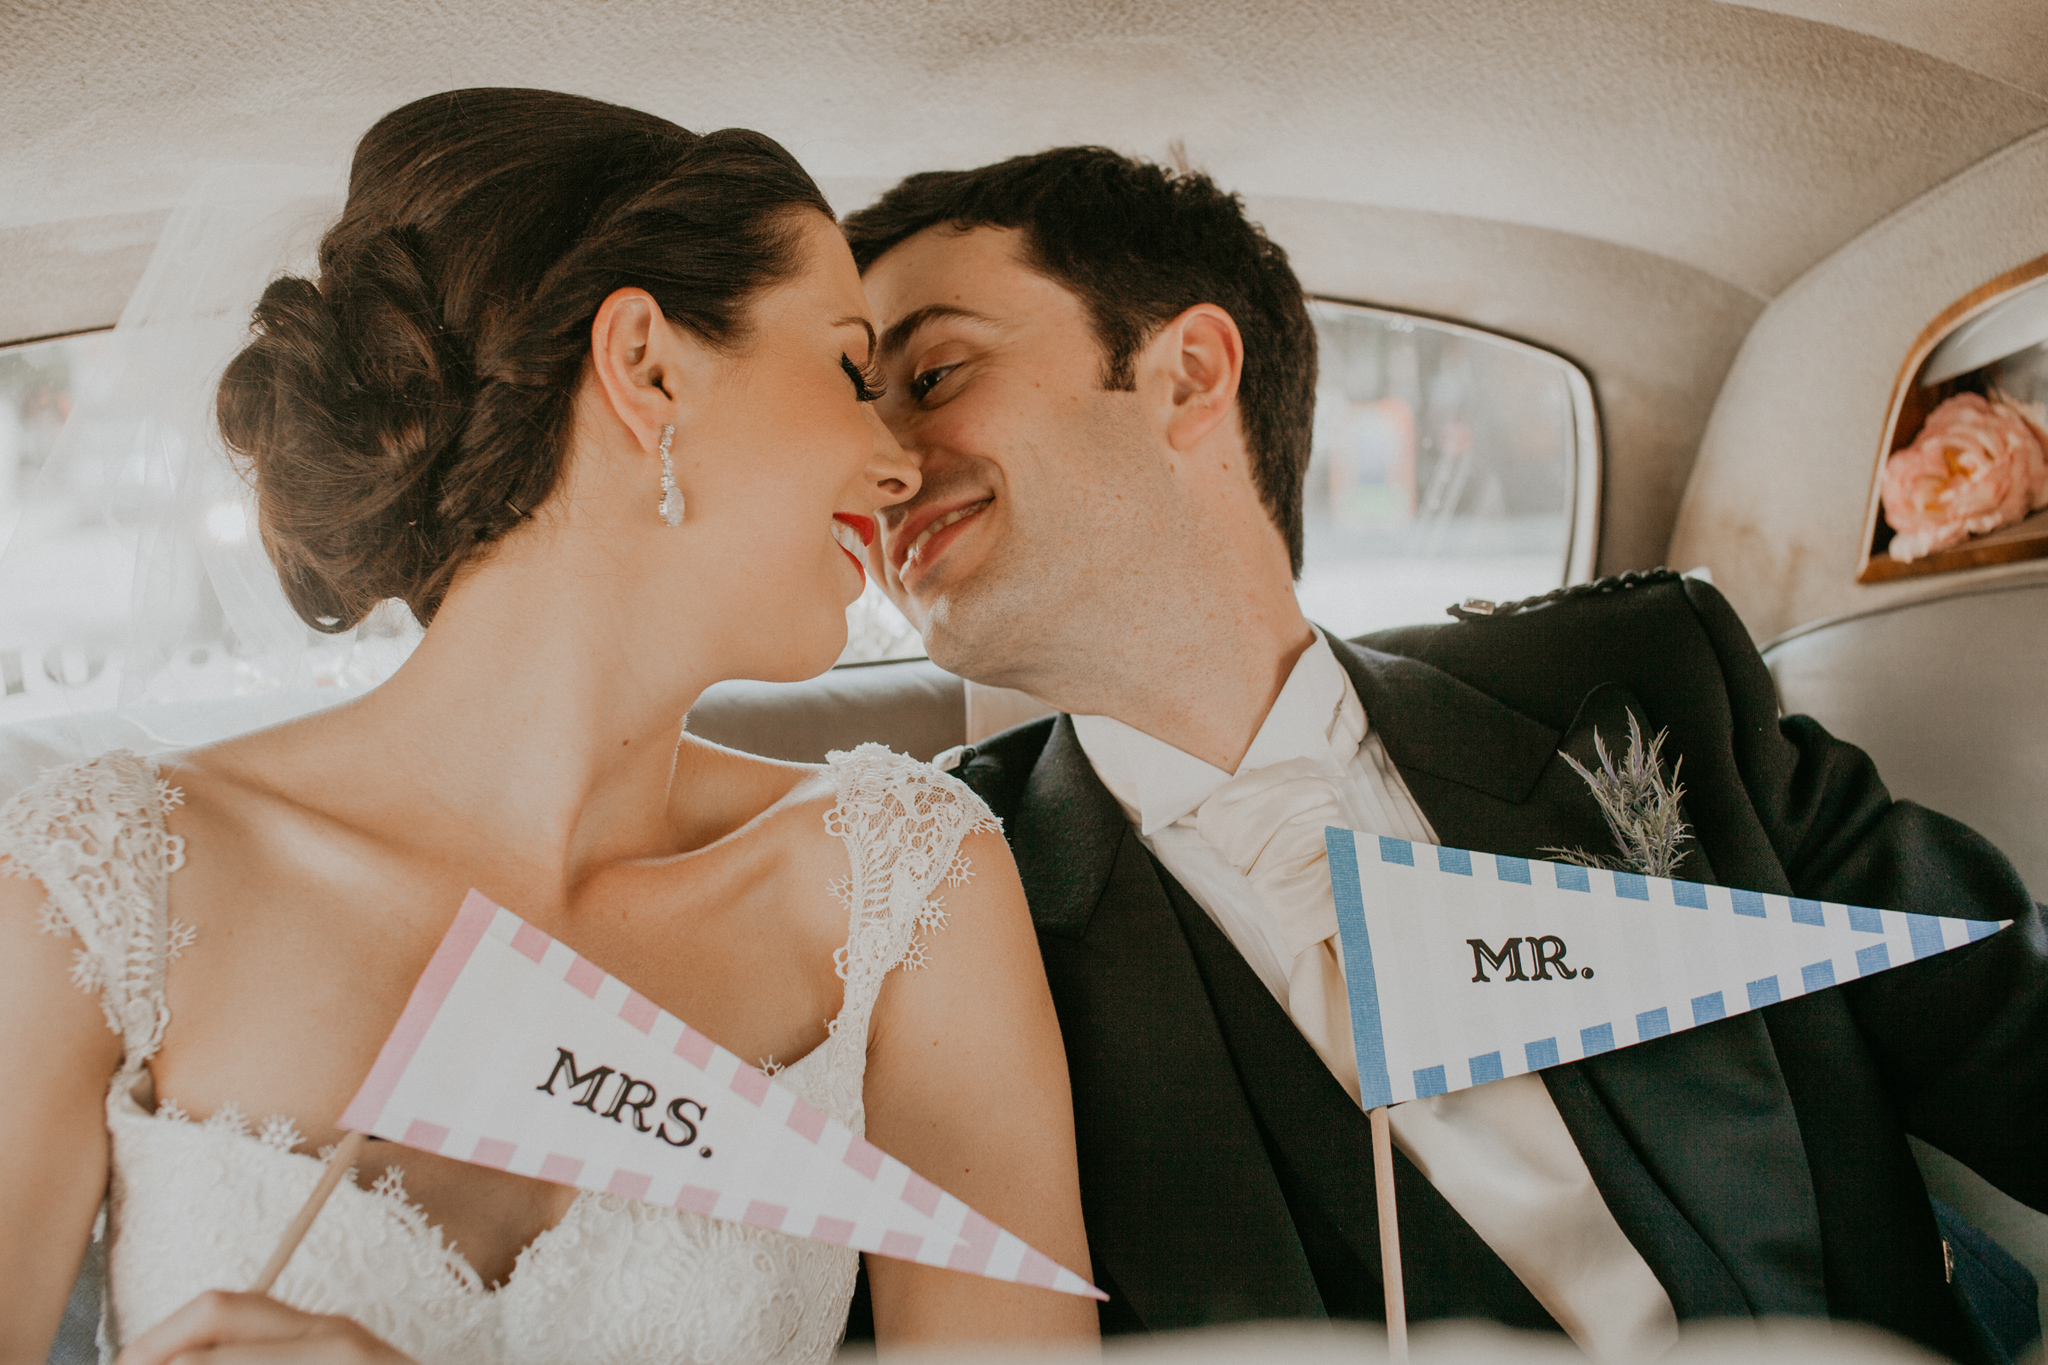 Couple of bride and groom kissing in car